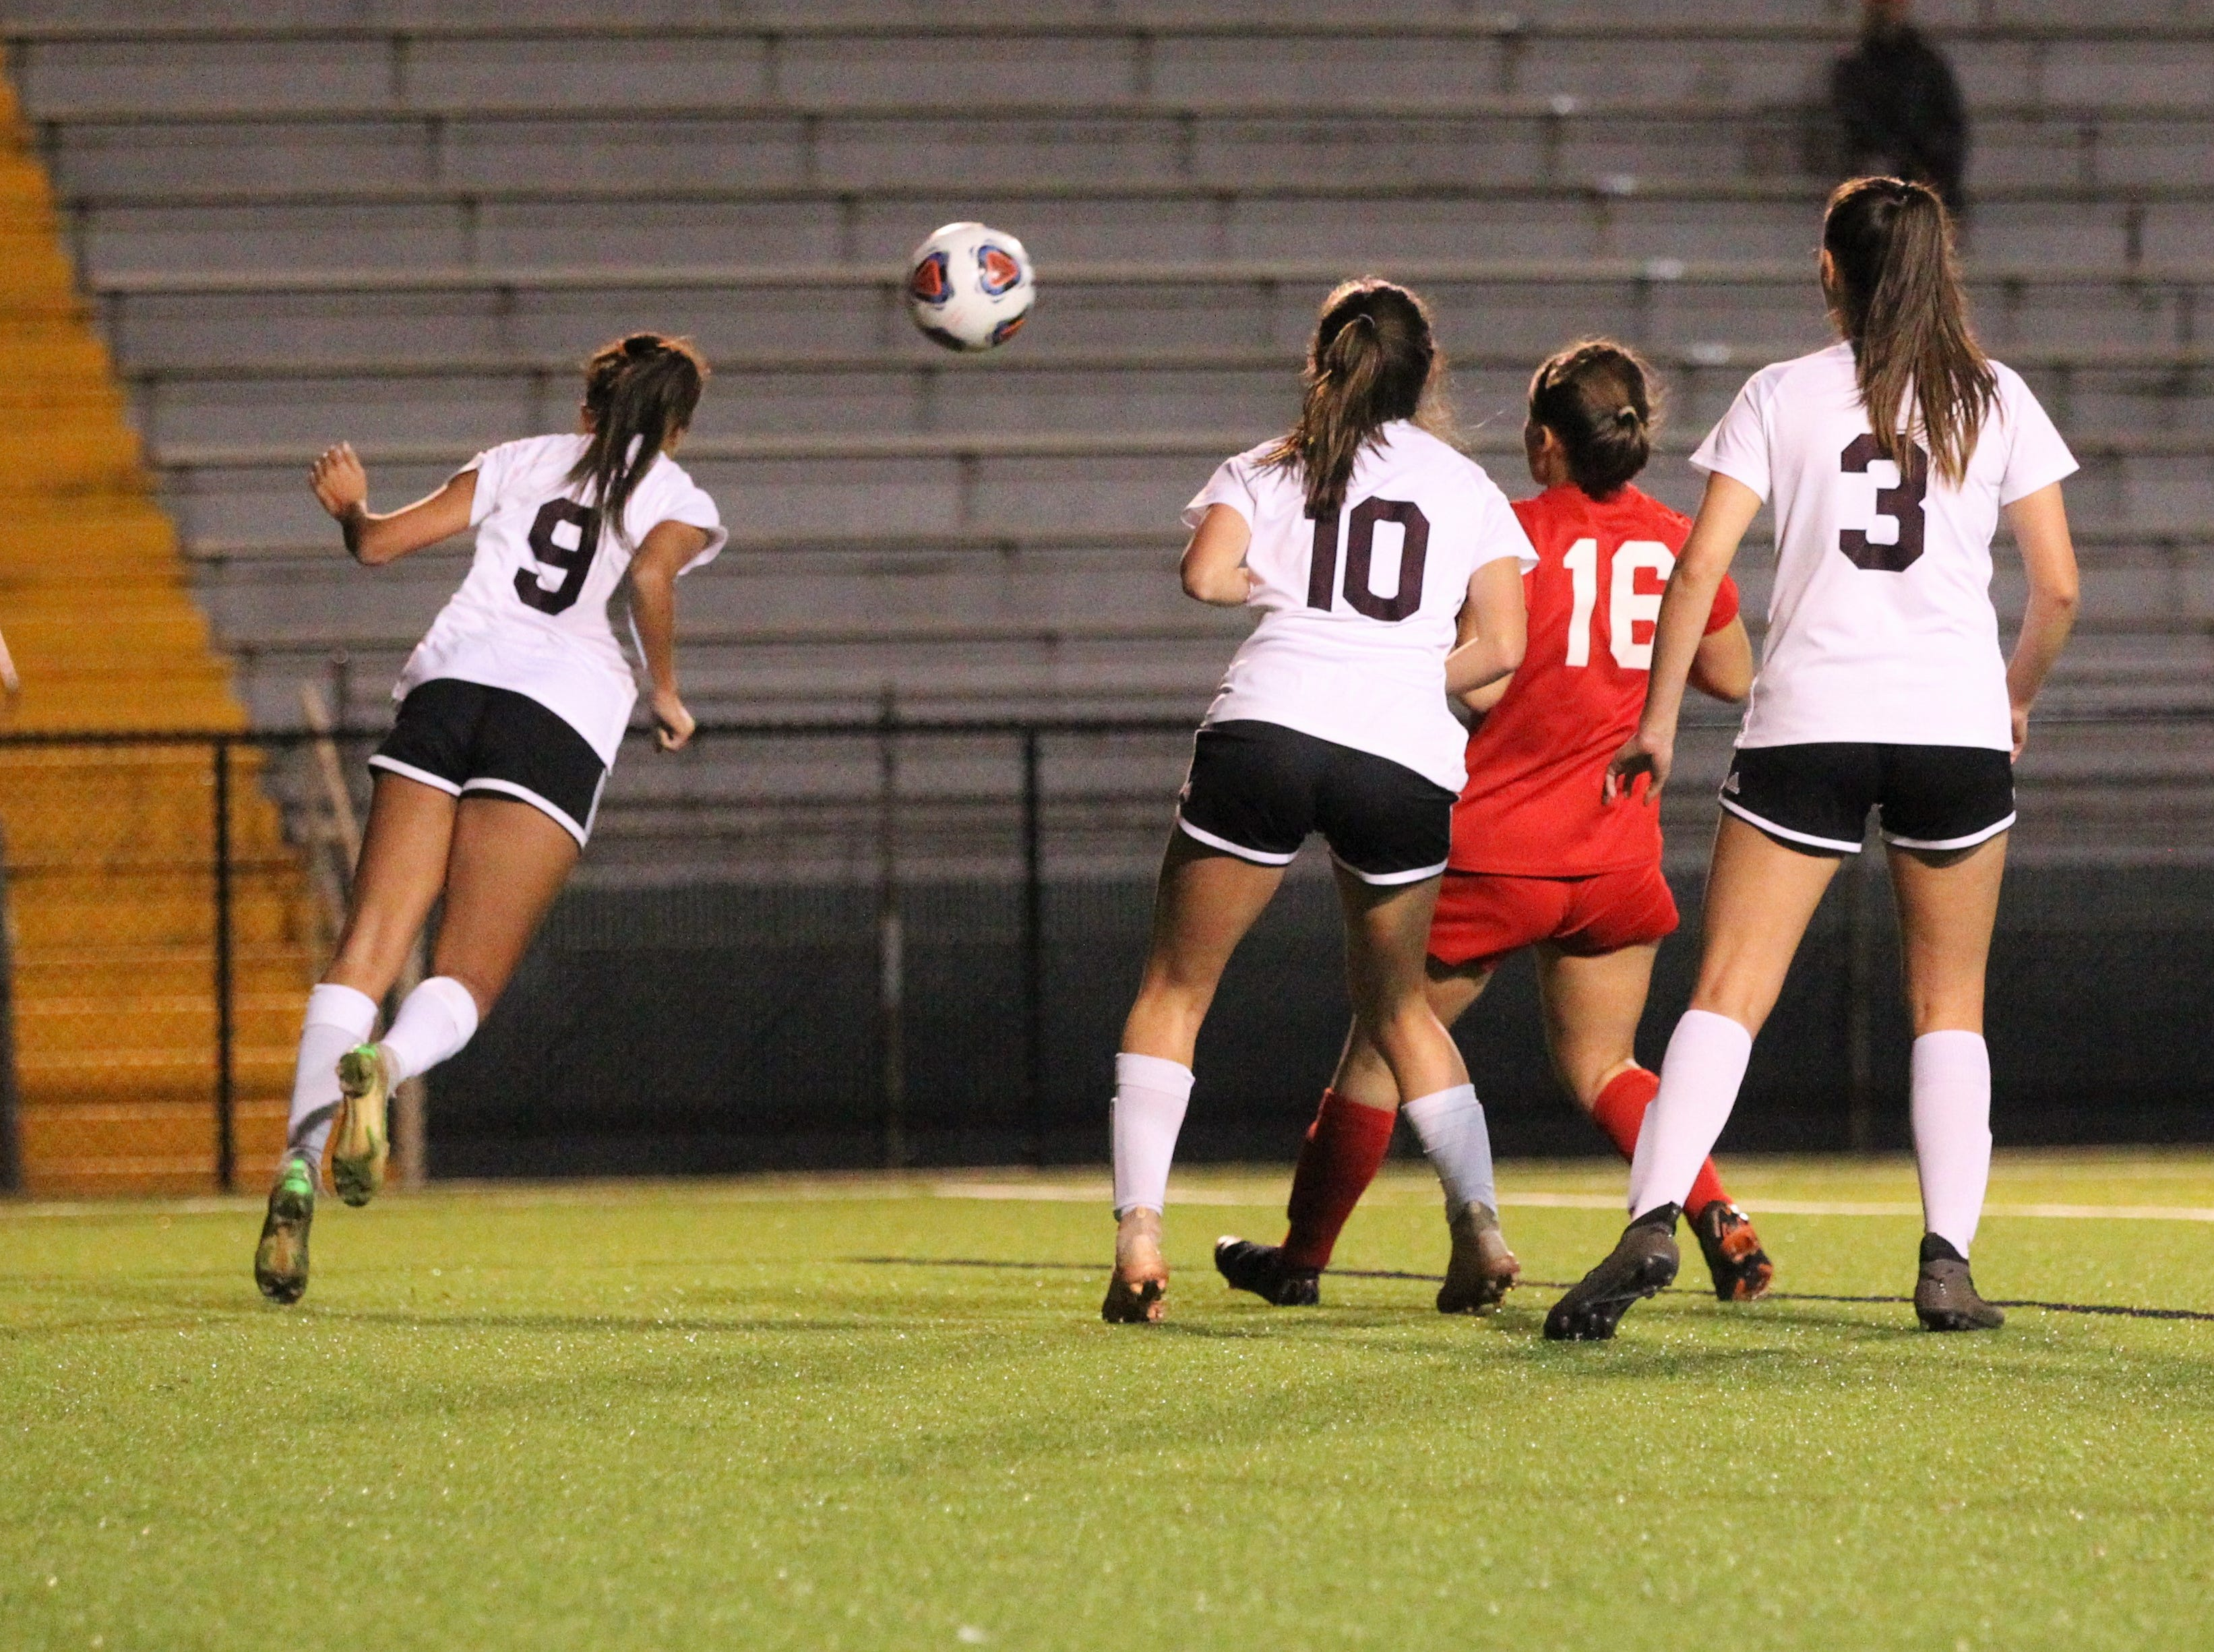 Niceville's Liliana Fernandez clears a ball with her head as Niceville's girls soccer team beat Leon 1-0 in a Region 1-4A semifinal at Gene Cox Stadium on Jan. 8, 2019.